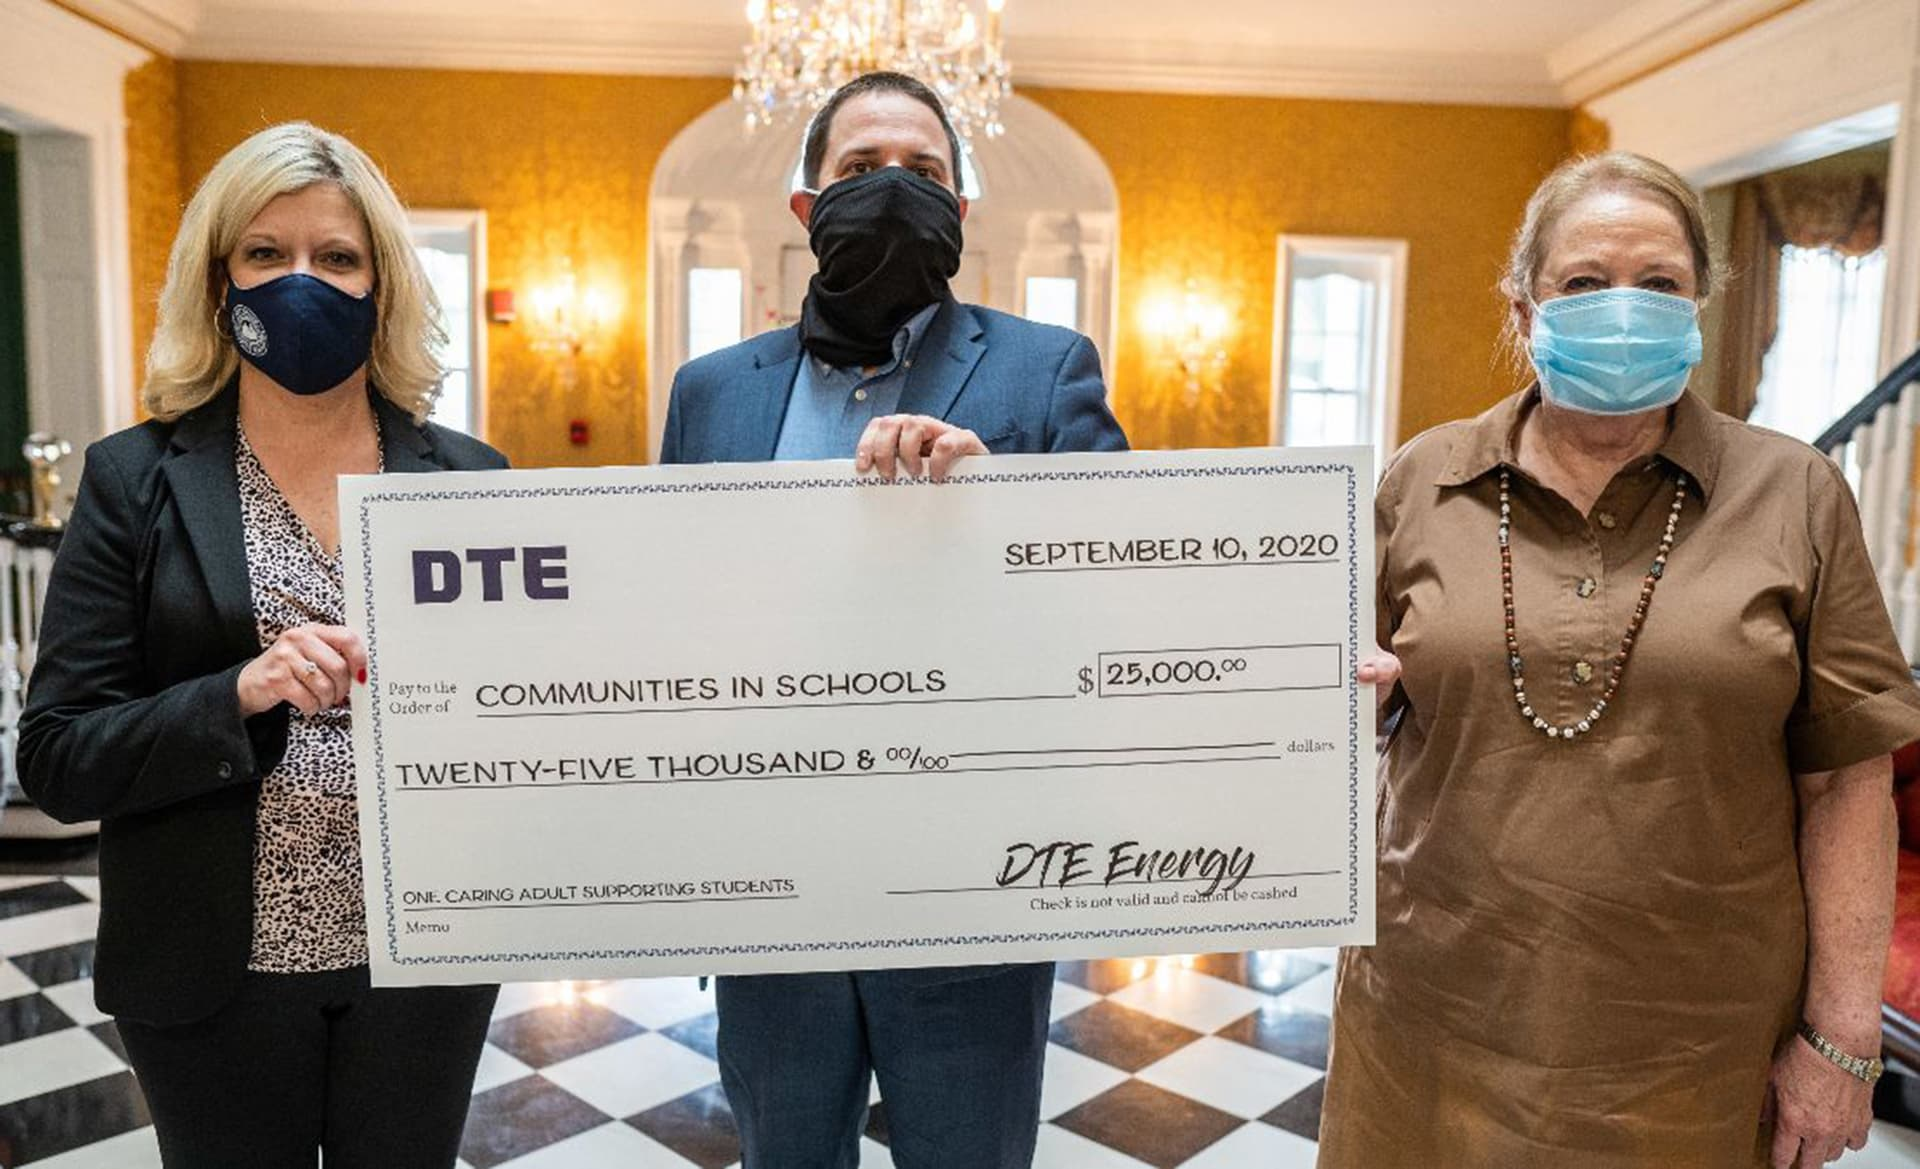 First Lady Cathy Justice accepts $25,000 check from DTE Energy in support of Communities In Schools program